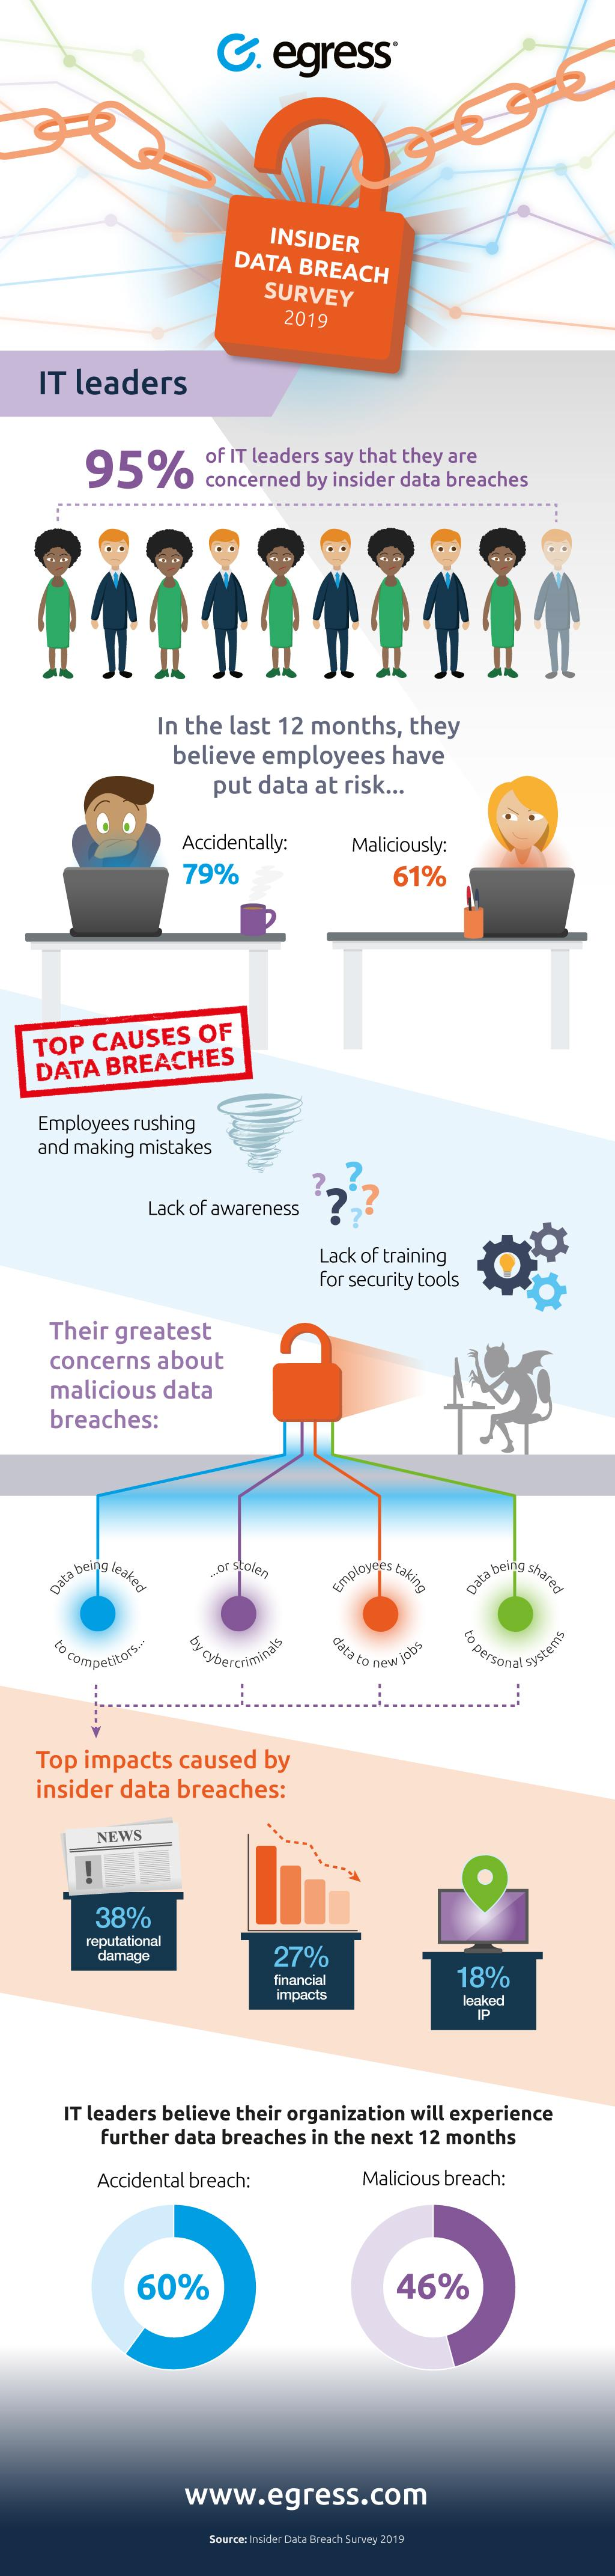 Insider threat data breaches infographic